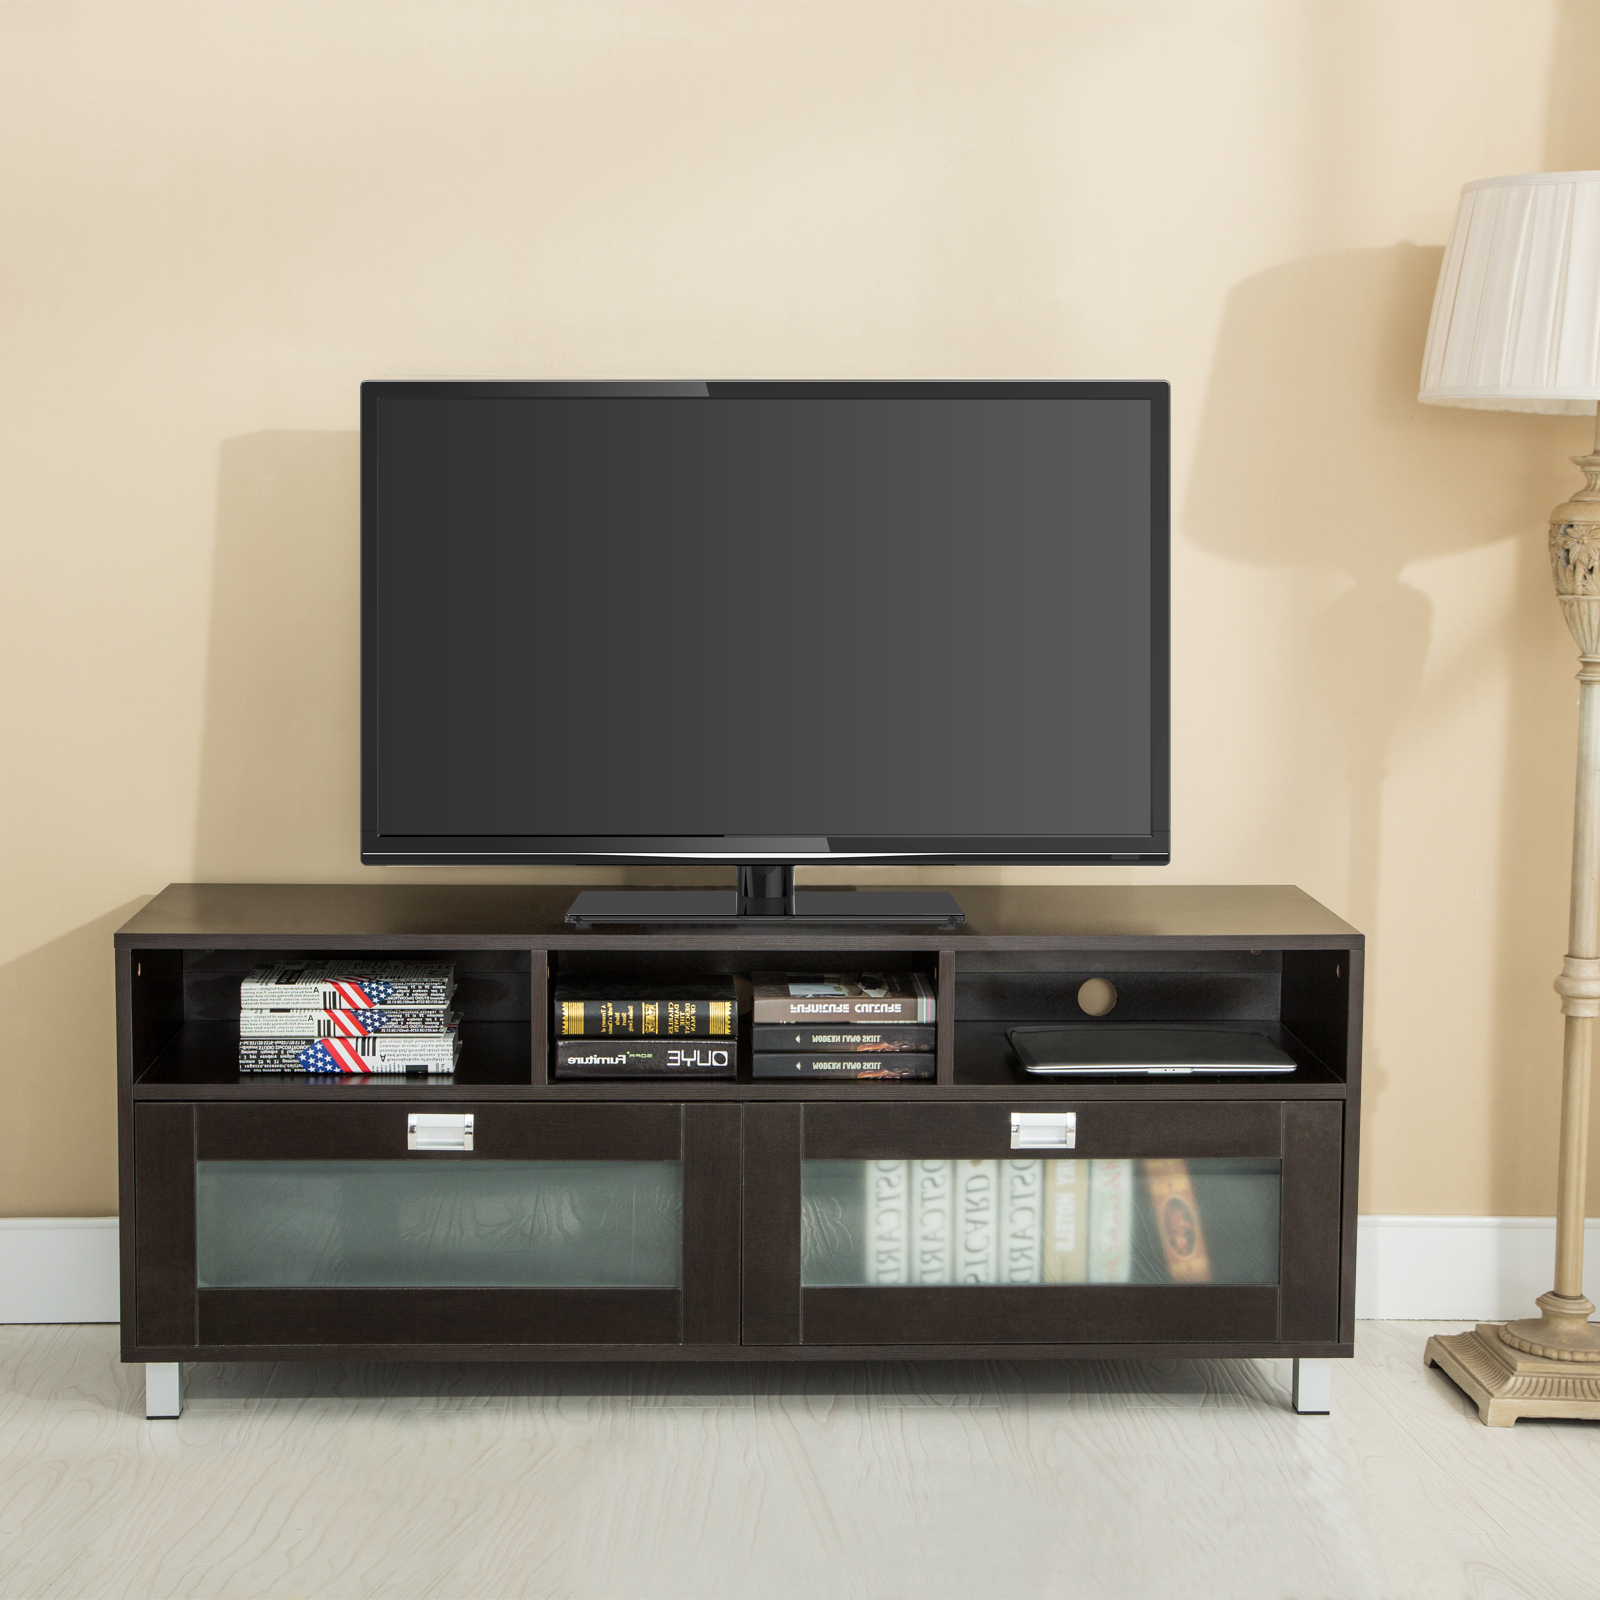 Tv Stand Cabinet (View 2 of 20)